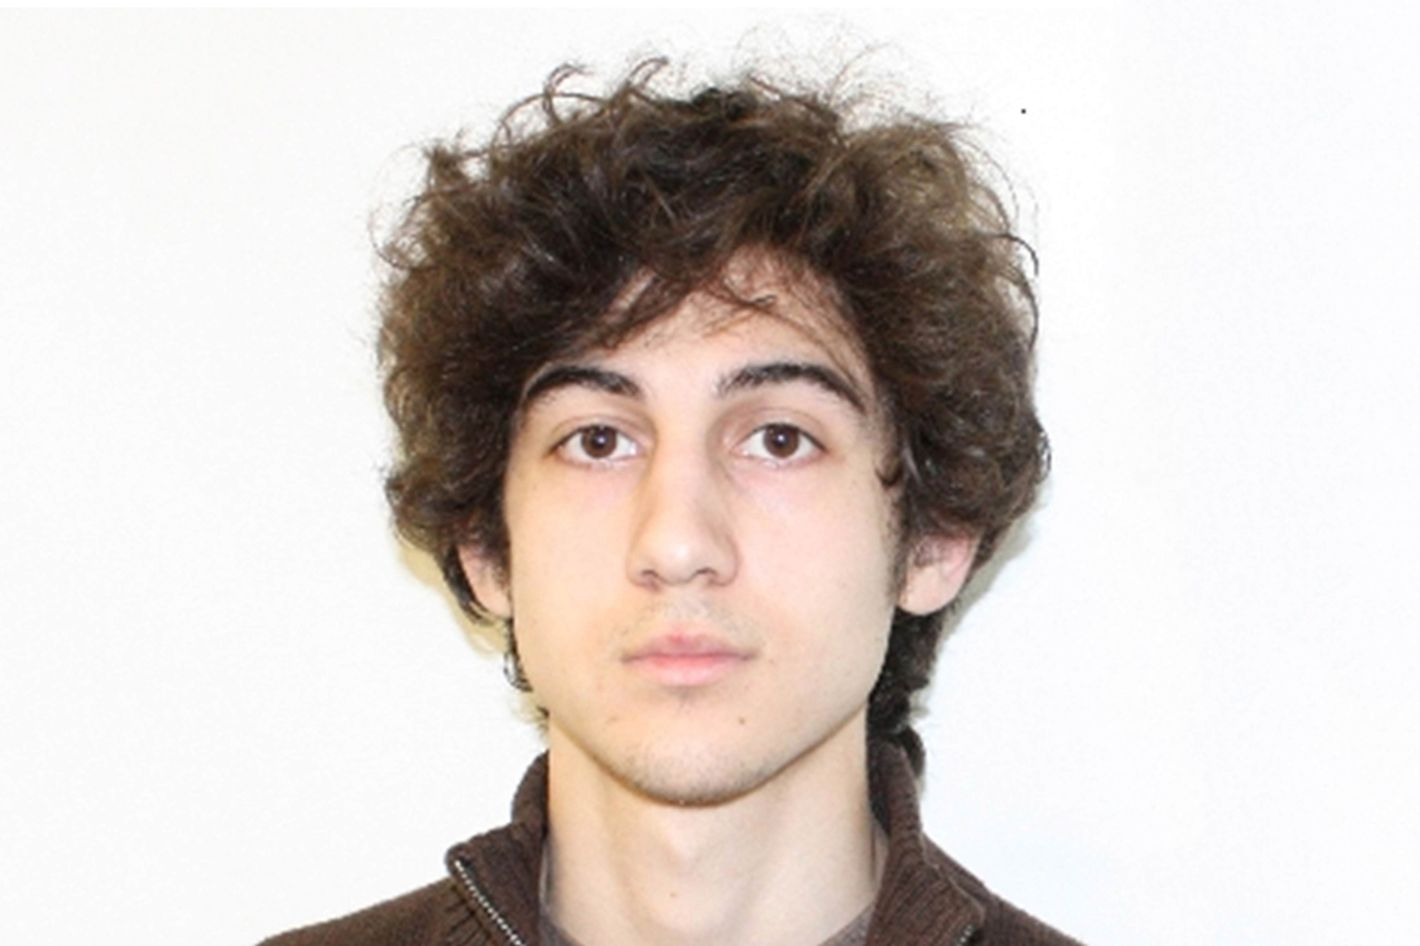 Dzhokhar Tsarnaev Wrote About God's Plan While Hiding in Boat